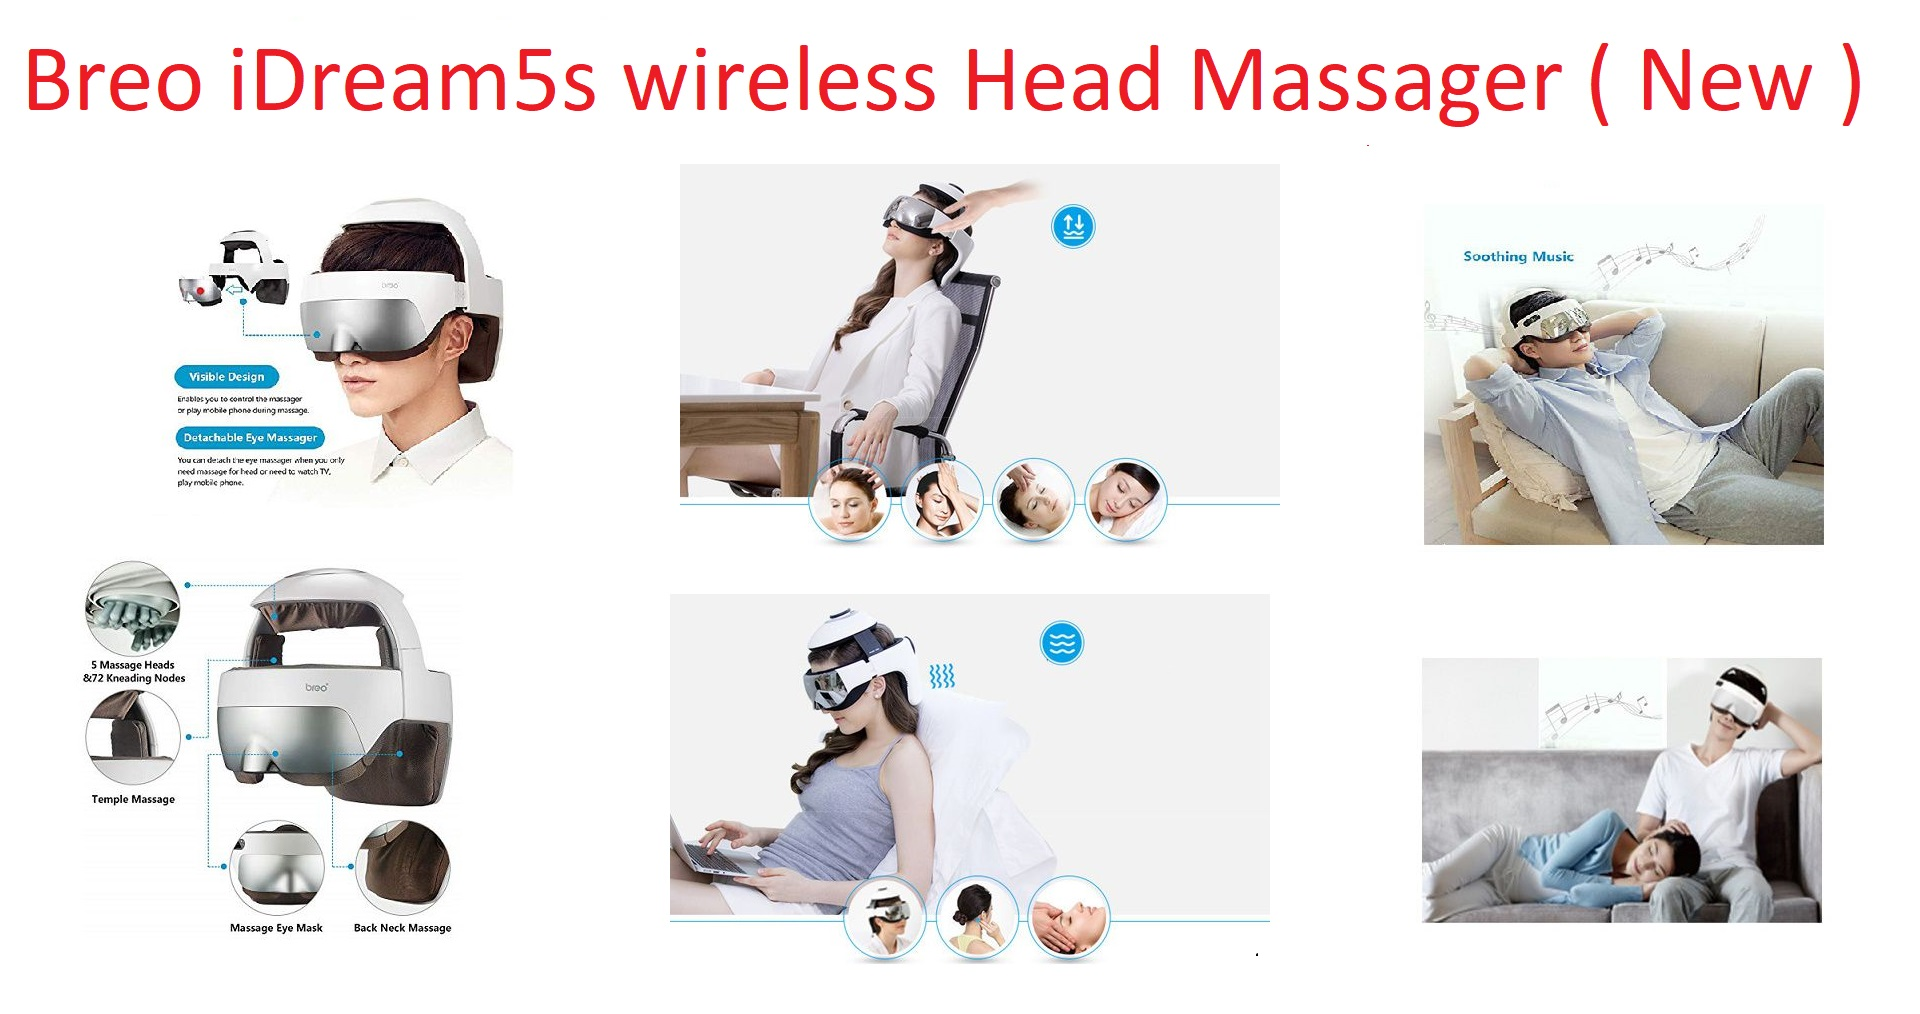 may-mat-xa-dau-mat-the-he-thu-5-breo-idream-5-head-massager